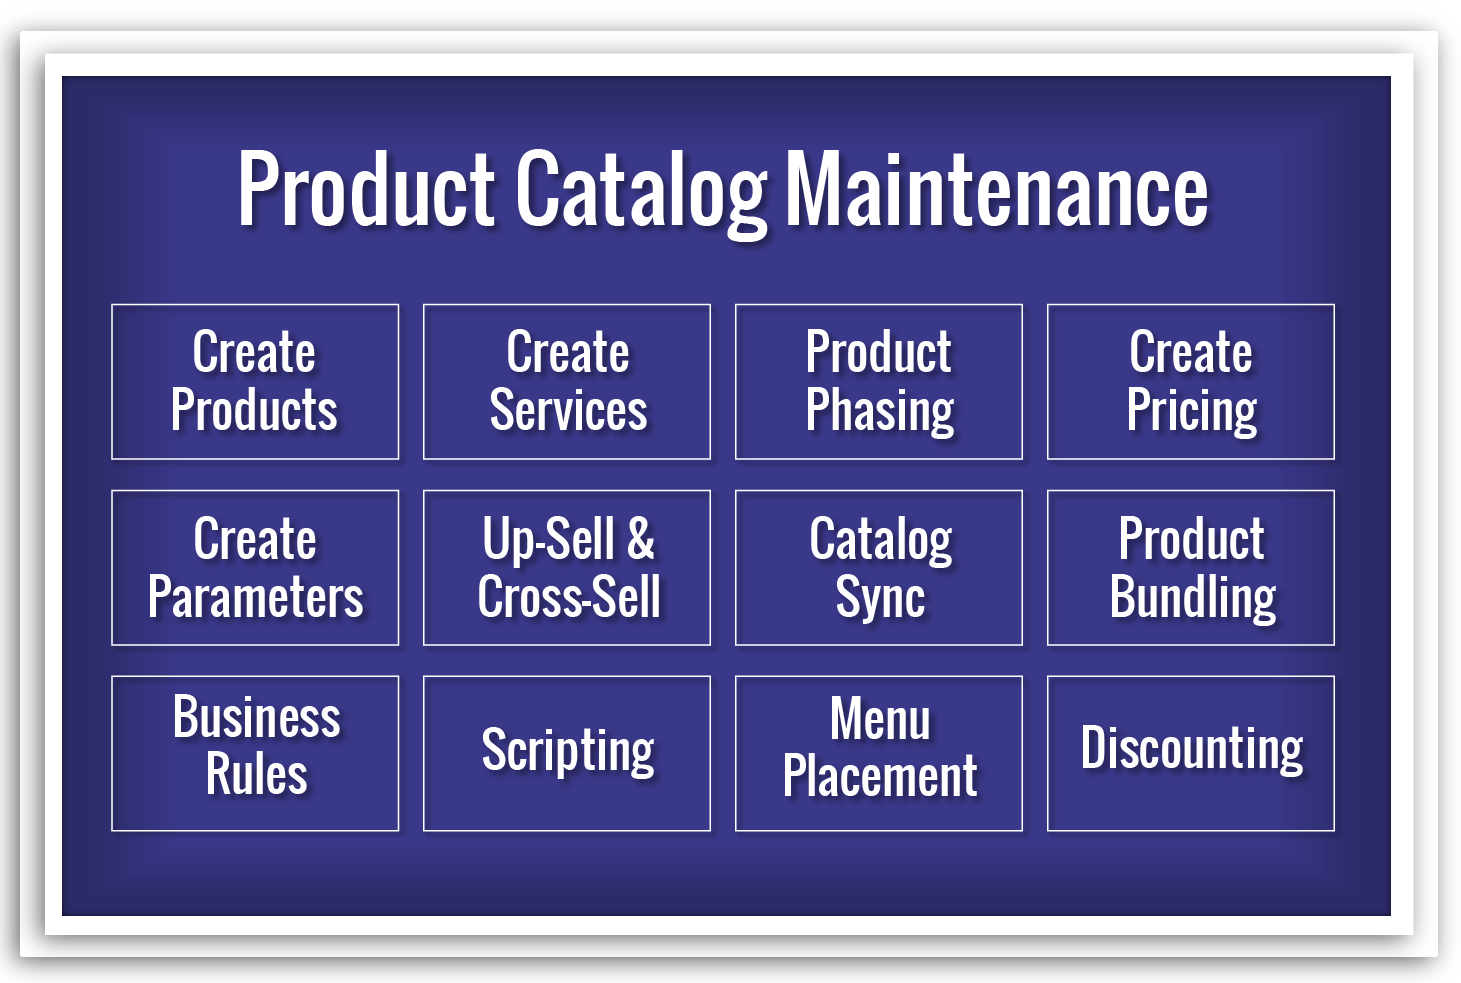 Product Catalog Maintenance